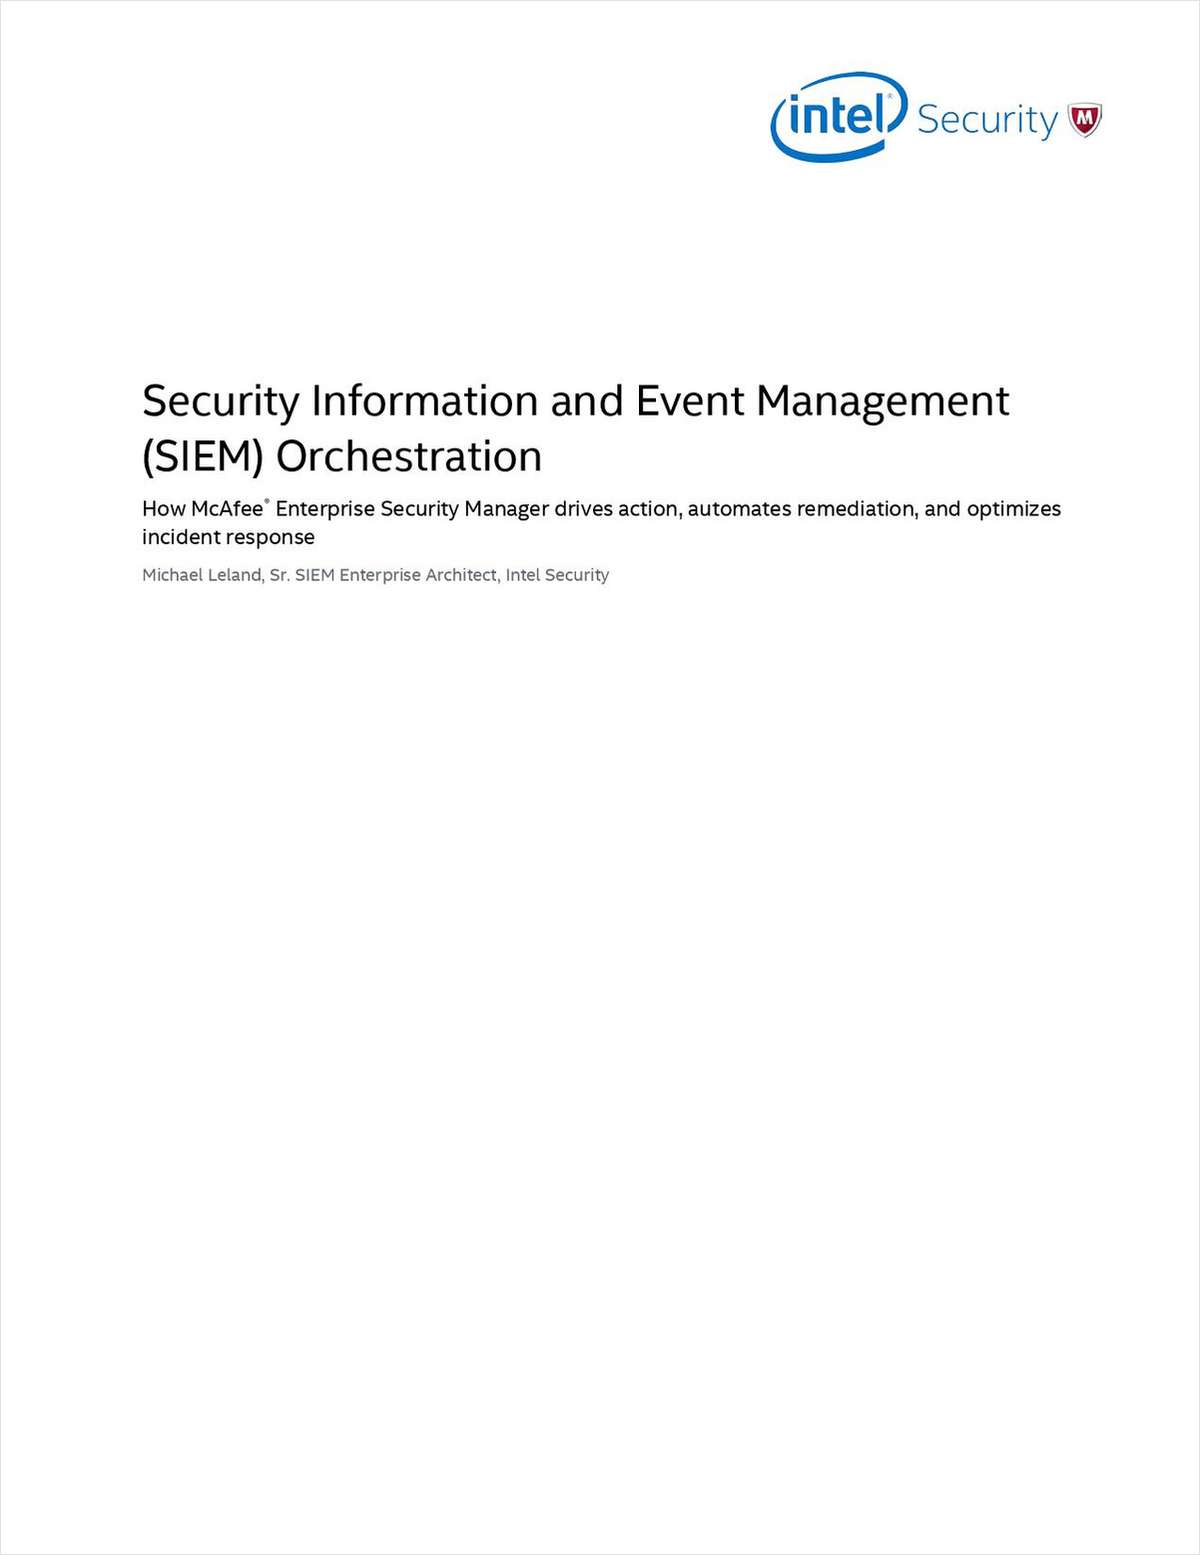 Security Information and Event Management (SIEM) Orchestration